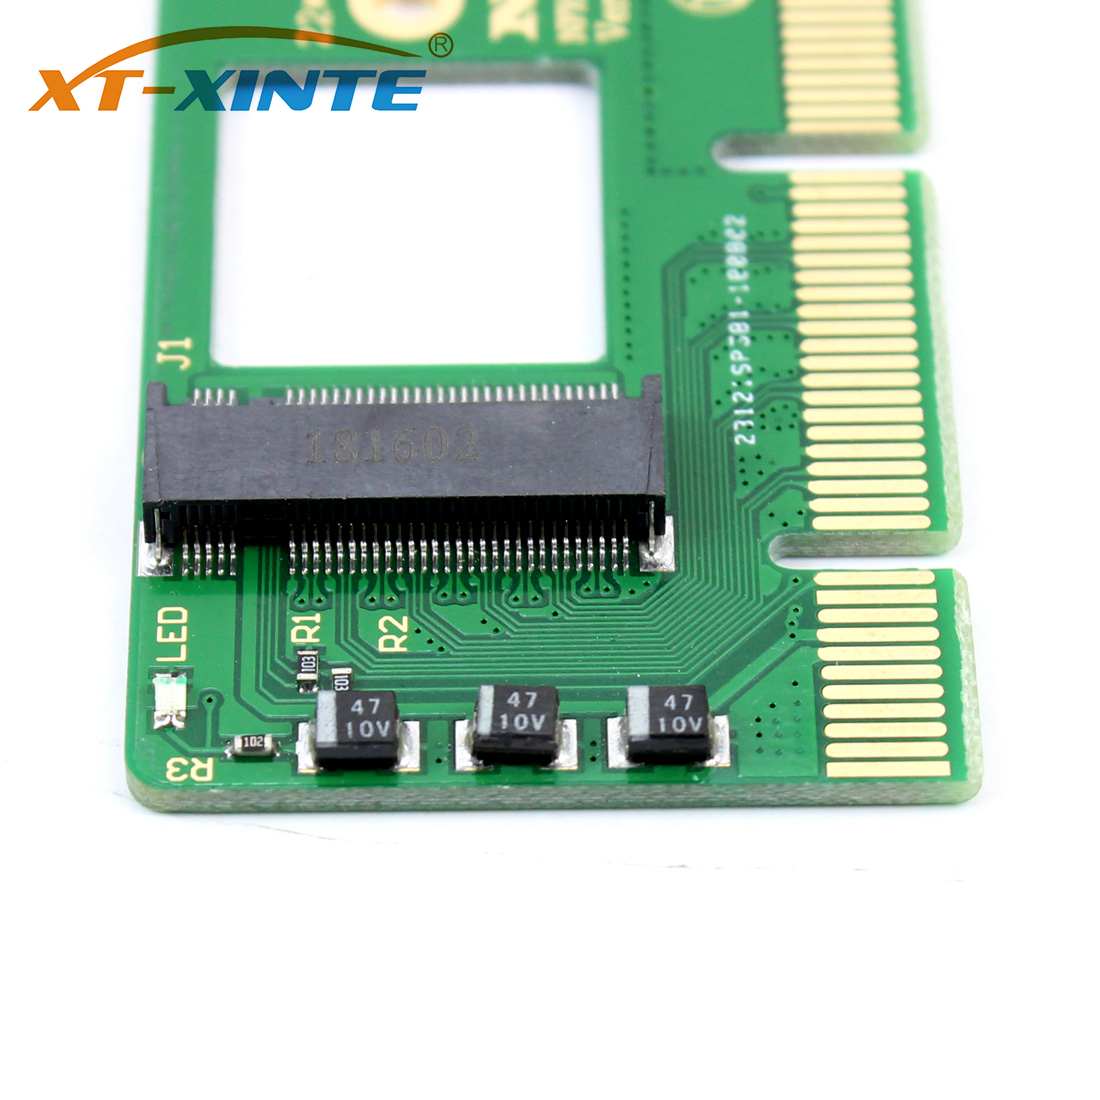 NGFF M key M 2 NVME AHCI SSD to PCI E PCI Express 3 0 16x x4 Adapter Riser Card Converter for XP941 SM951 PM951 A110 SSD in Computer Cables Connectors from Computer Office